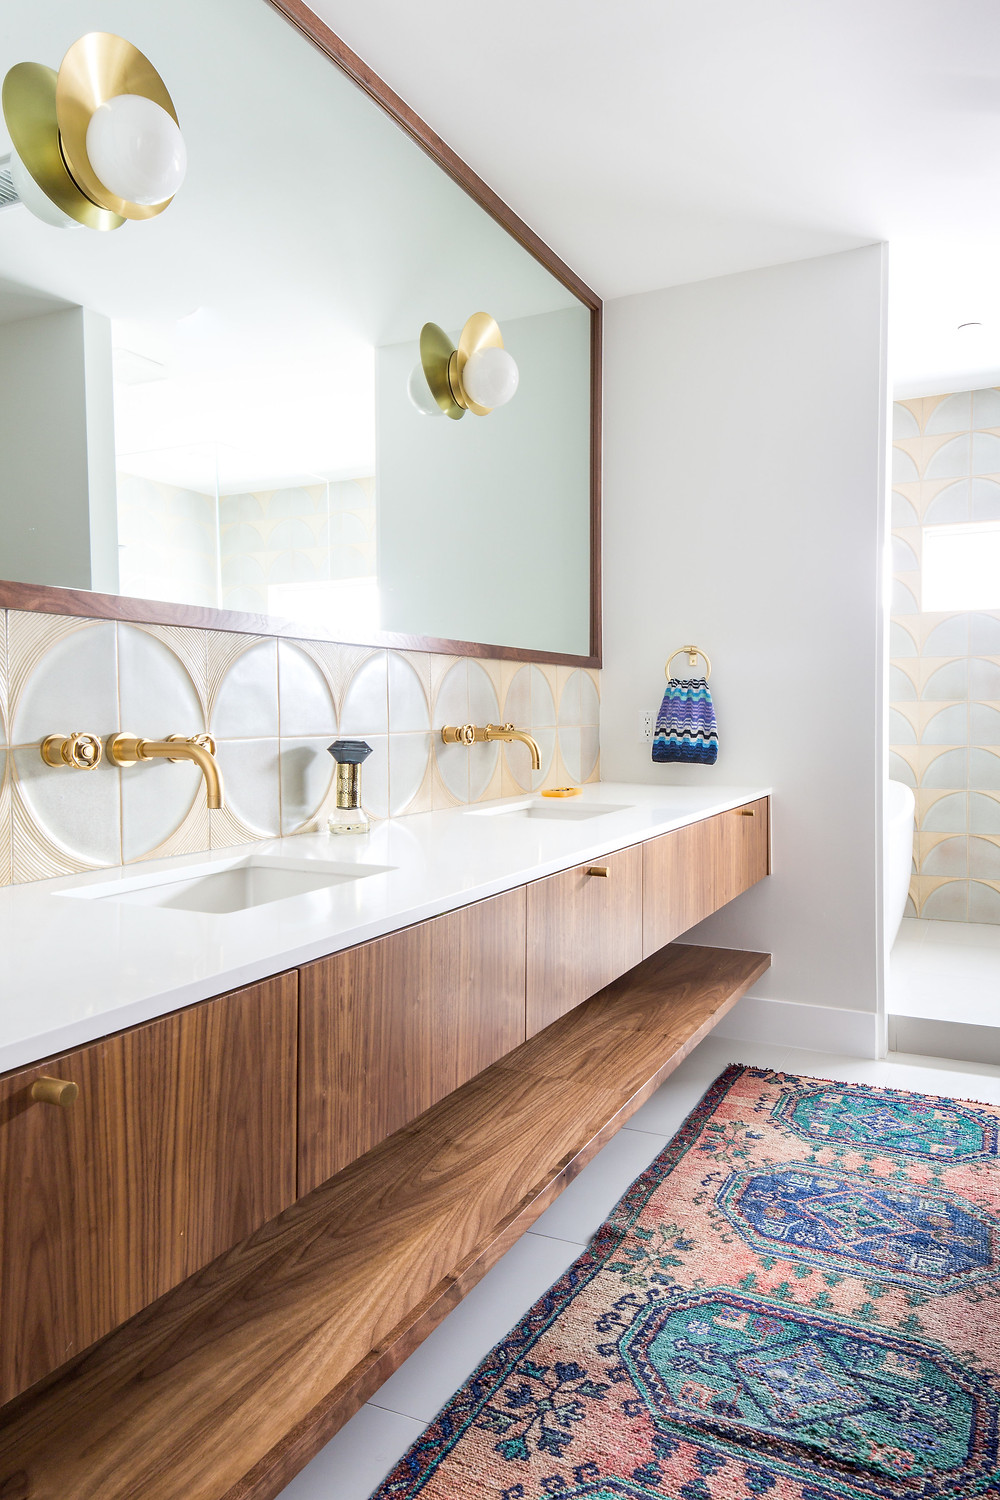 Master bathroom with floating walnut vanity cabinet and open shelf